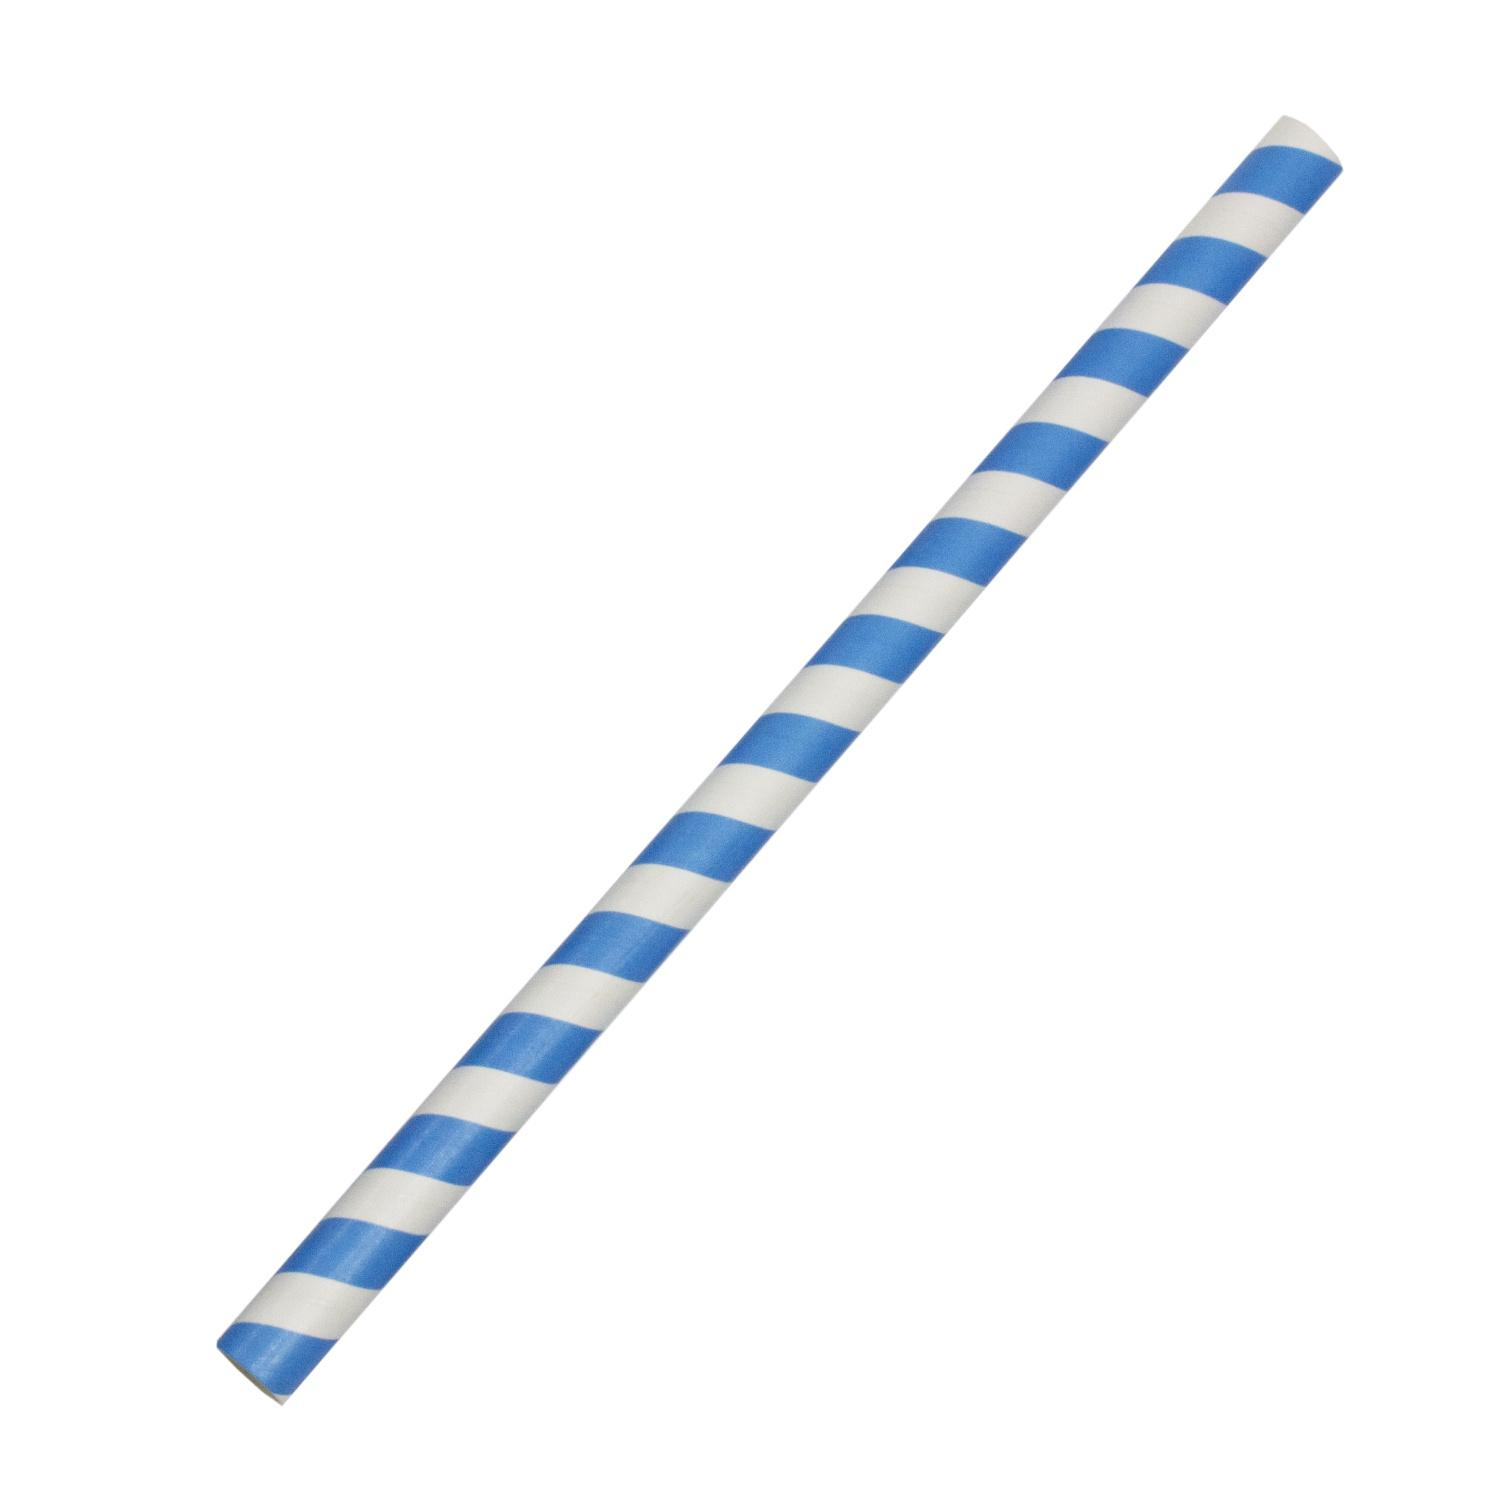 image of 8 in. Paper Straws Blue/White Striped